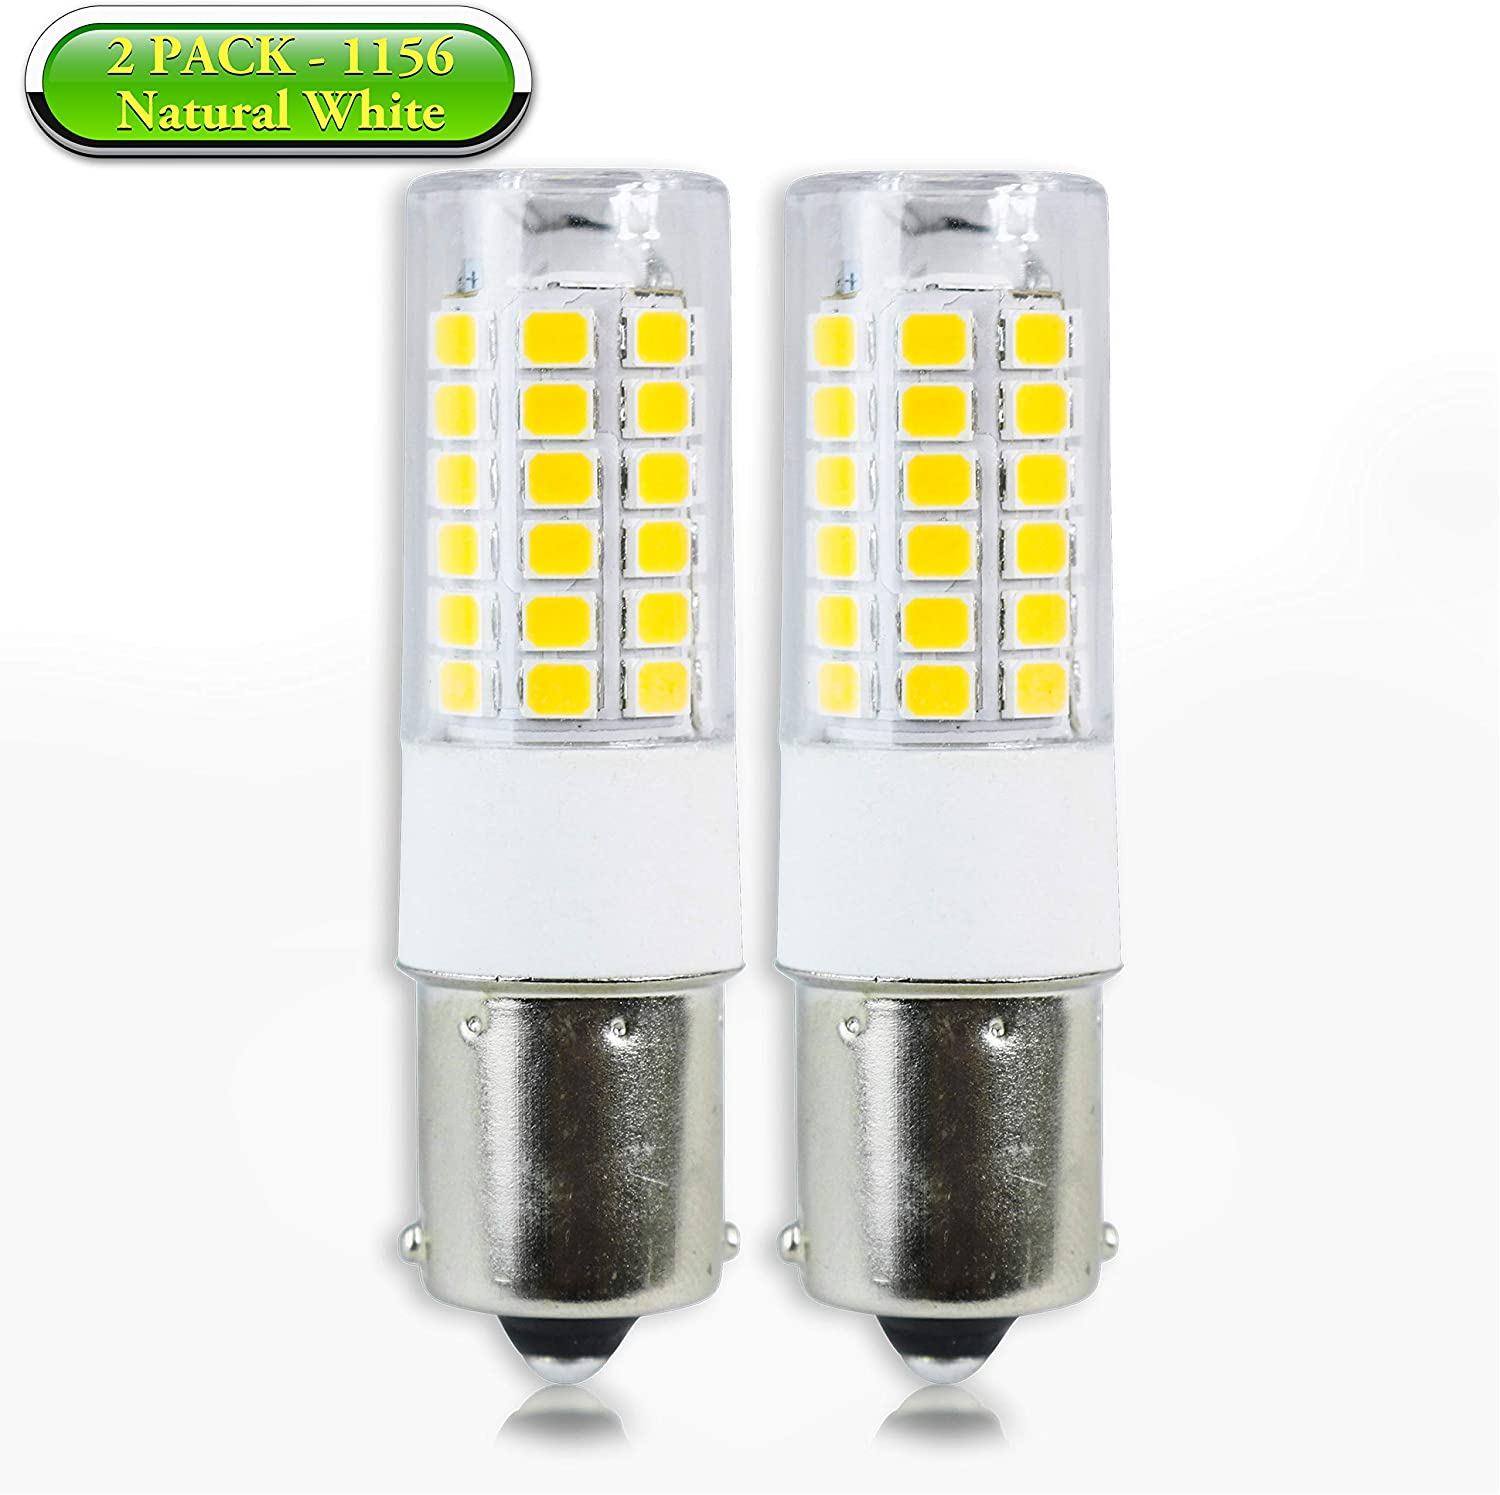 2-Pack 4000K Natural White Leisure LED 4-Pack RV LED Light Bulbs 400LM 1156 1141 1003 1073 BA15S 51 SMD LED Replacement Light Bulbs for RV Indoor Lights 10-30V